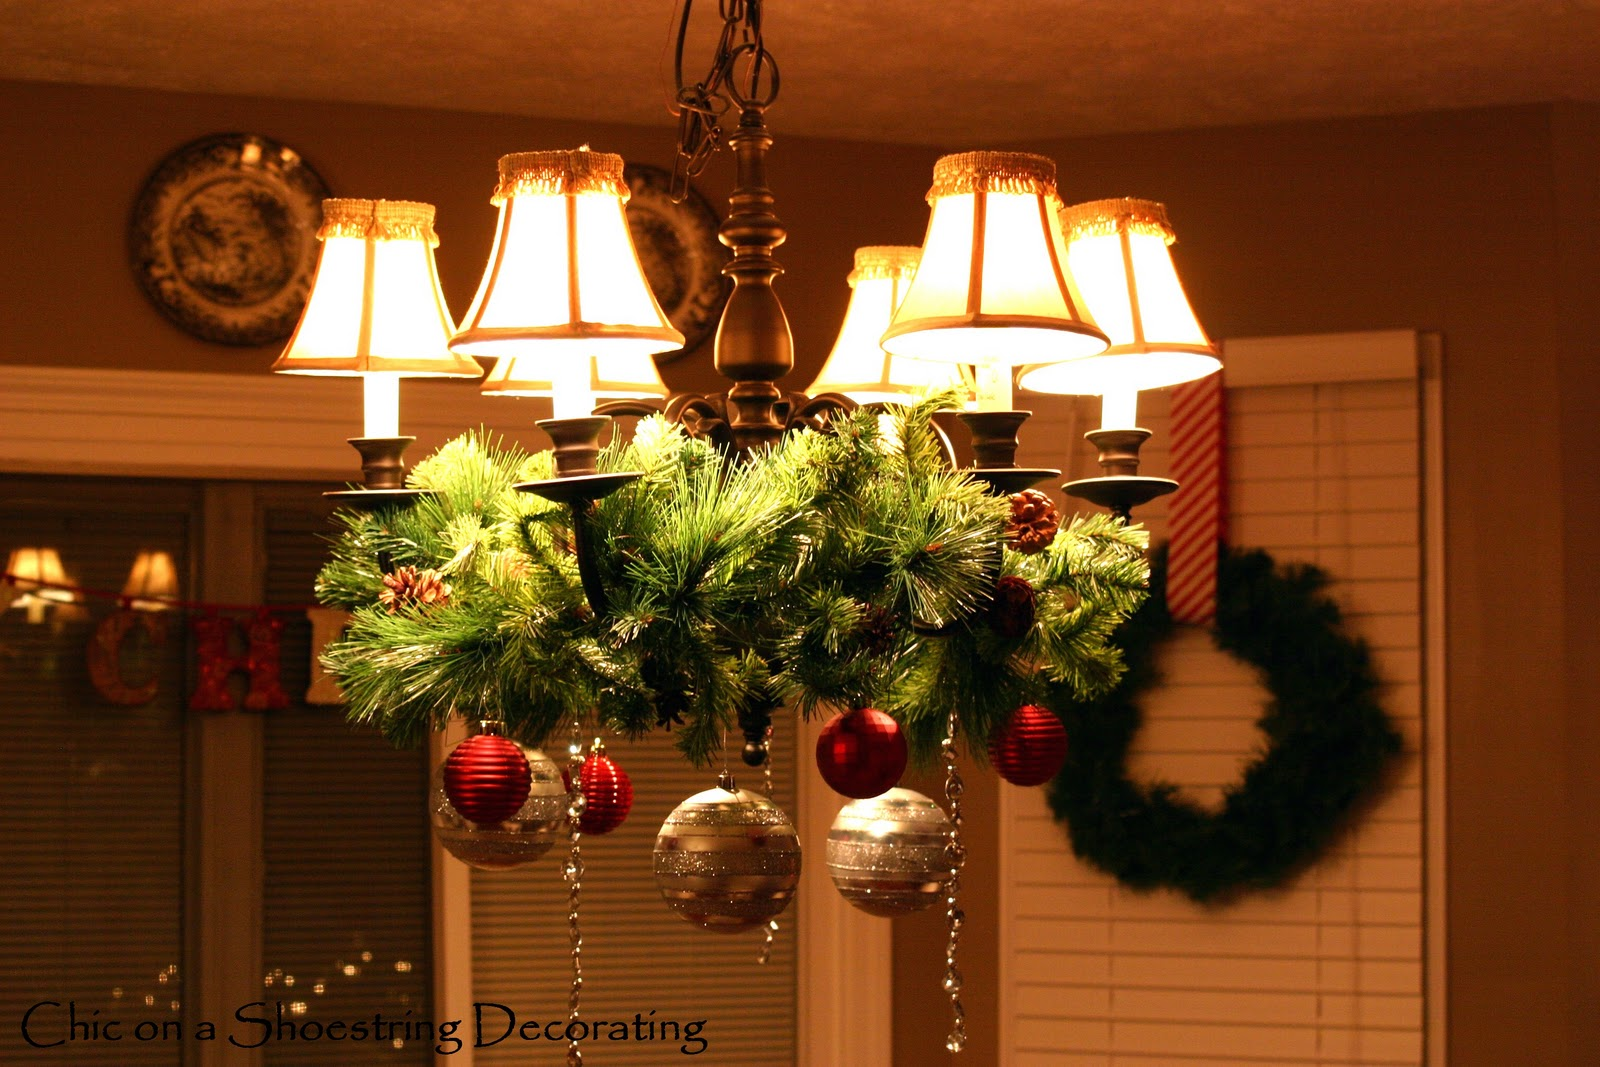 Decorate Apartment Christmas Lights